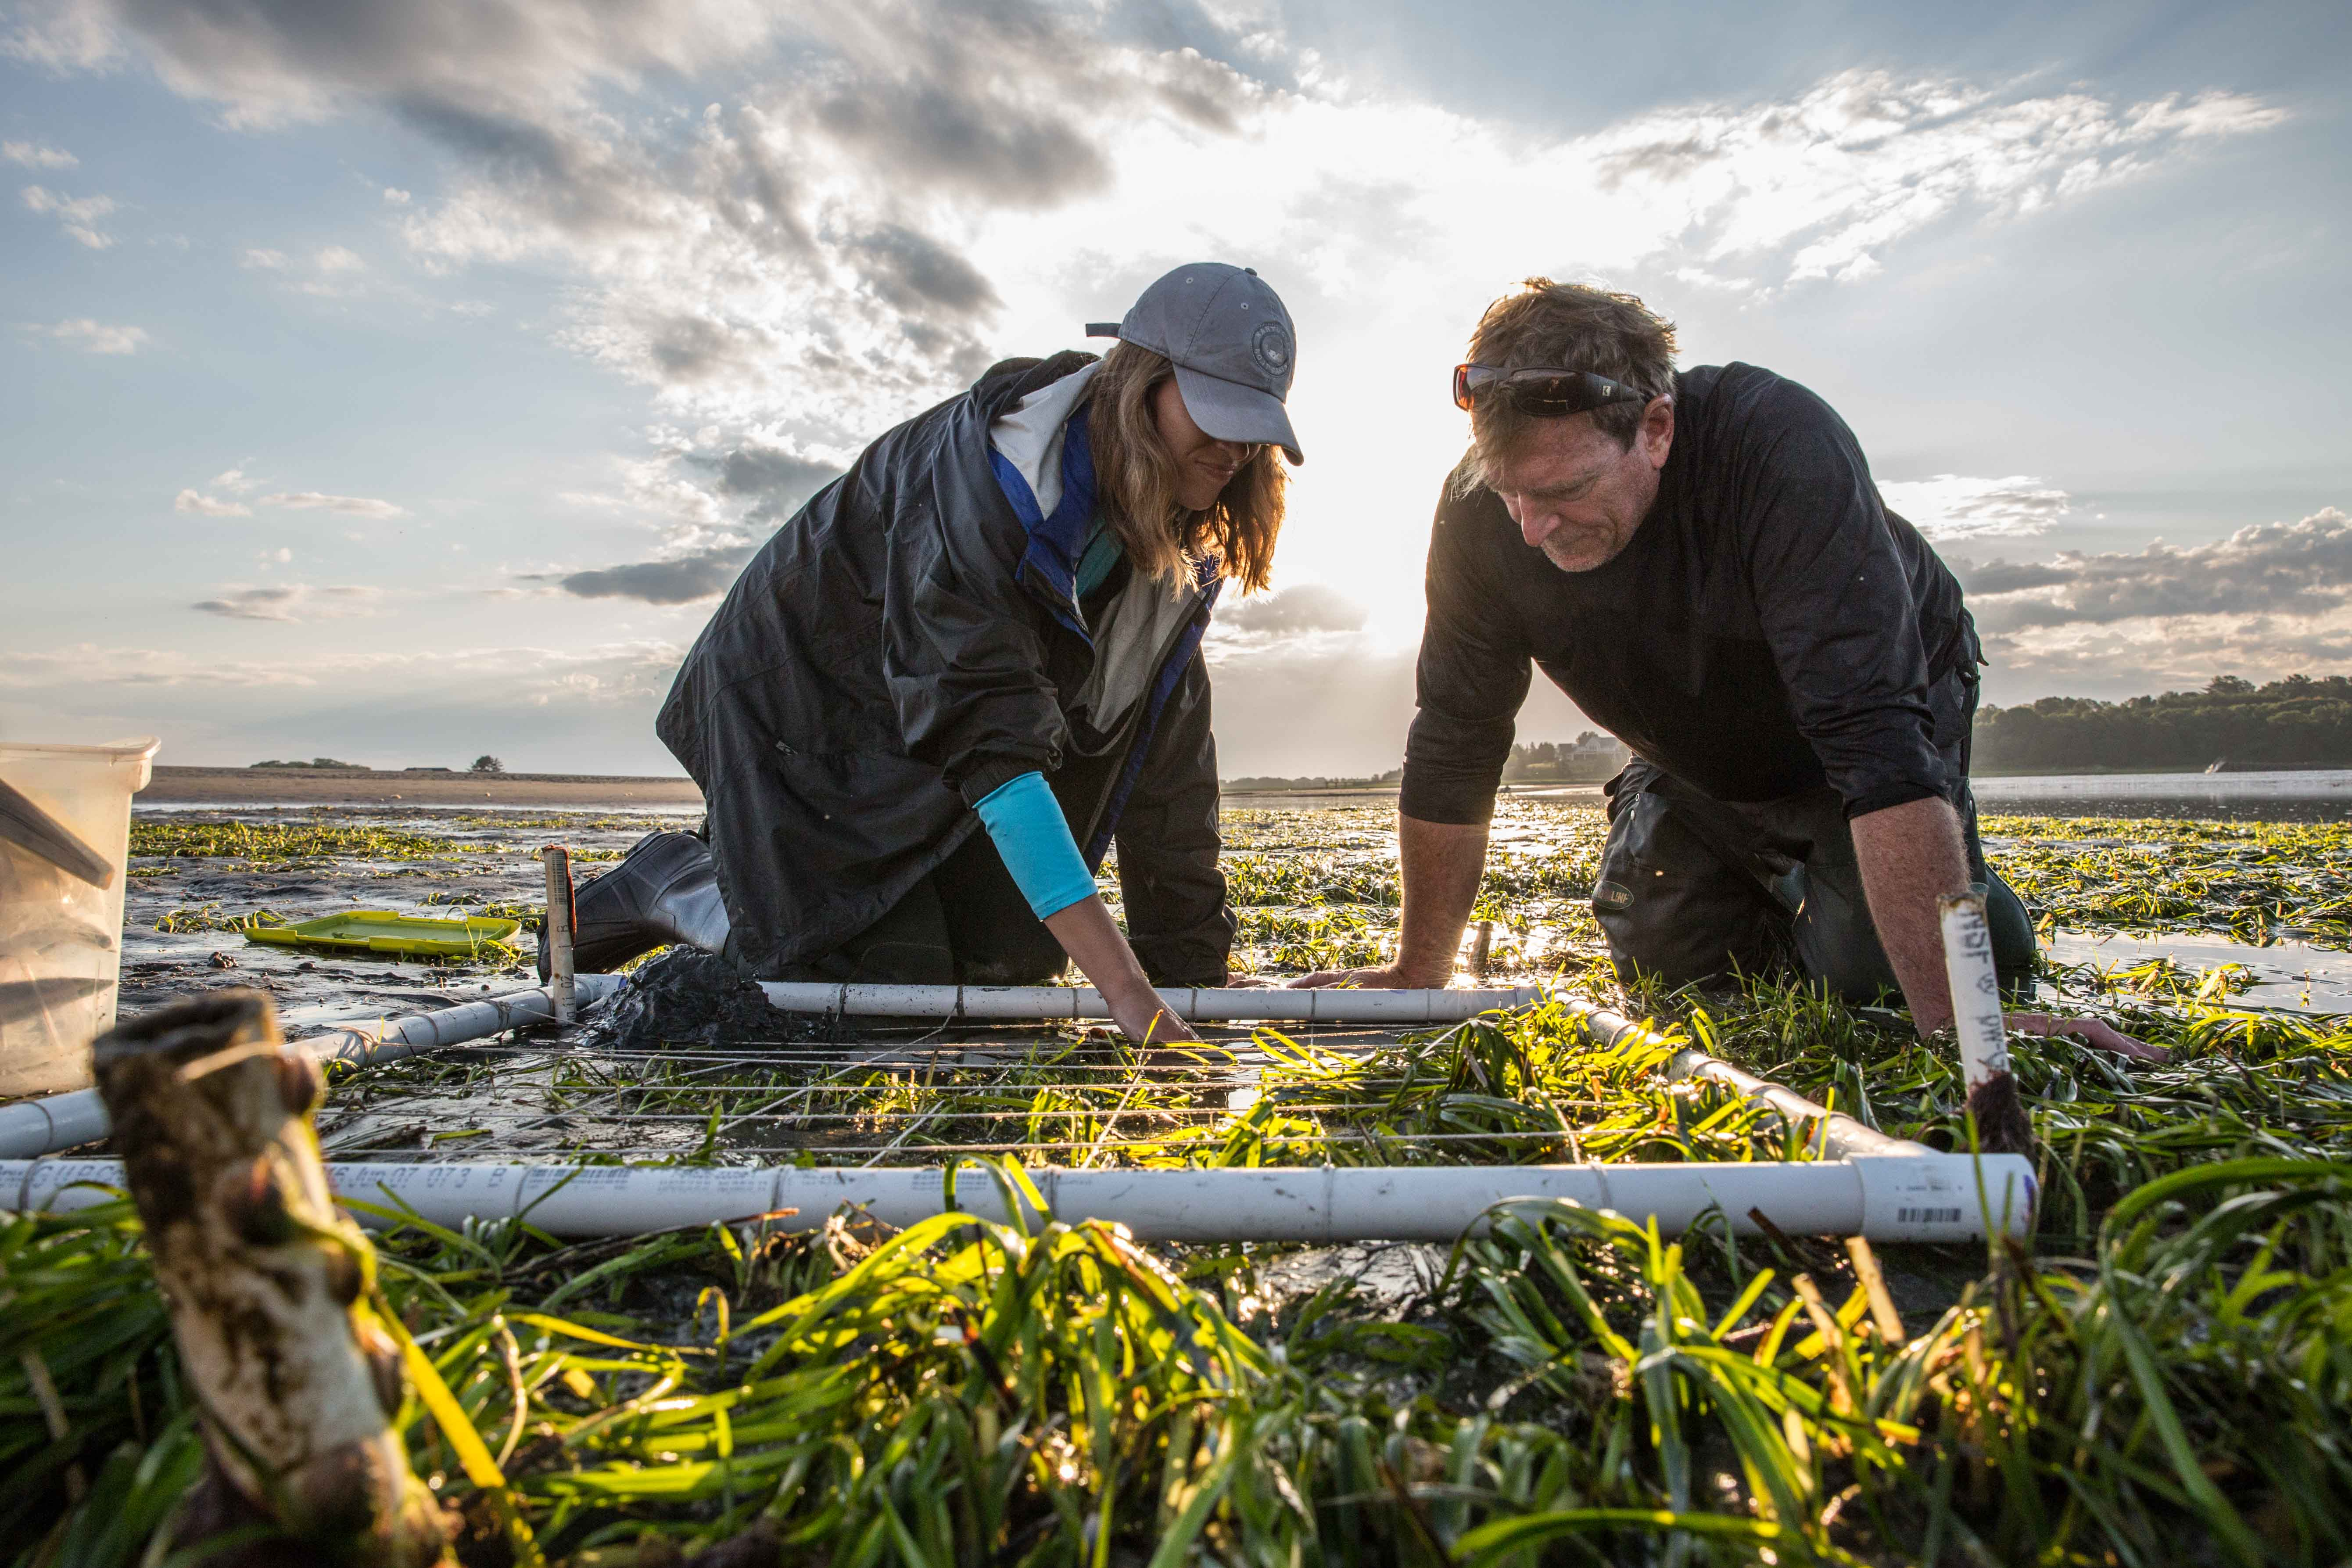 Scientists Alyssa Novak and Peter Phippen gather data from a new bed of eelgrass in the Great Marsh in Essex. Volunteers spent three years transplanting more than 25,000 plants here. The eelgrass is a boon to the ecosystem, says Novak: it helps water quality, stabilizes sediments, and shelters baby marine animals. (Photo by Coco McCabe/GroundTruth)